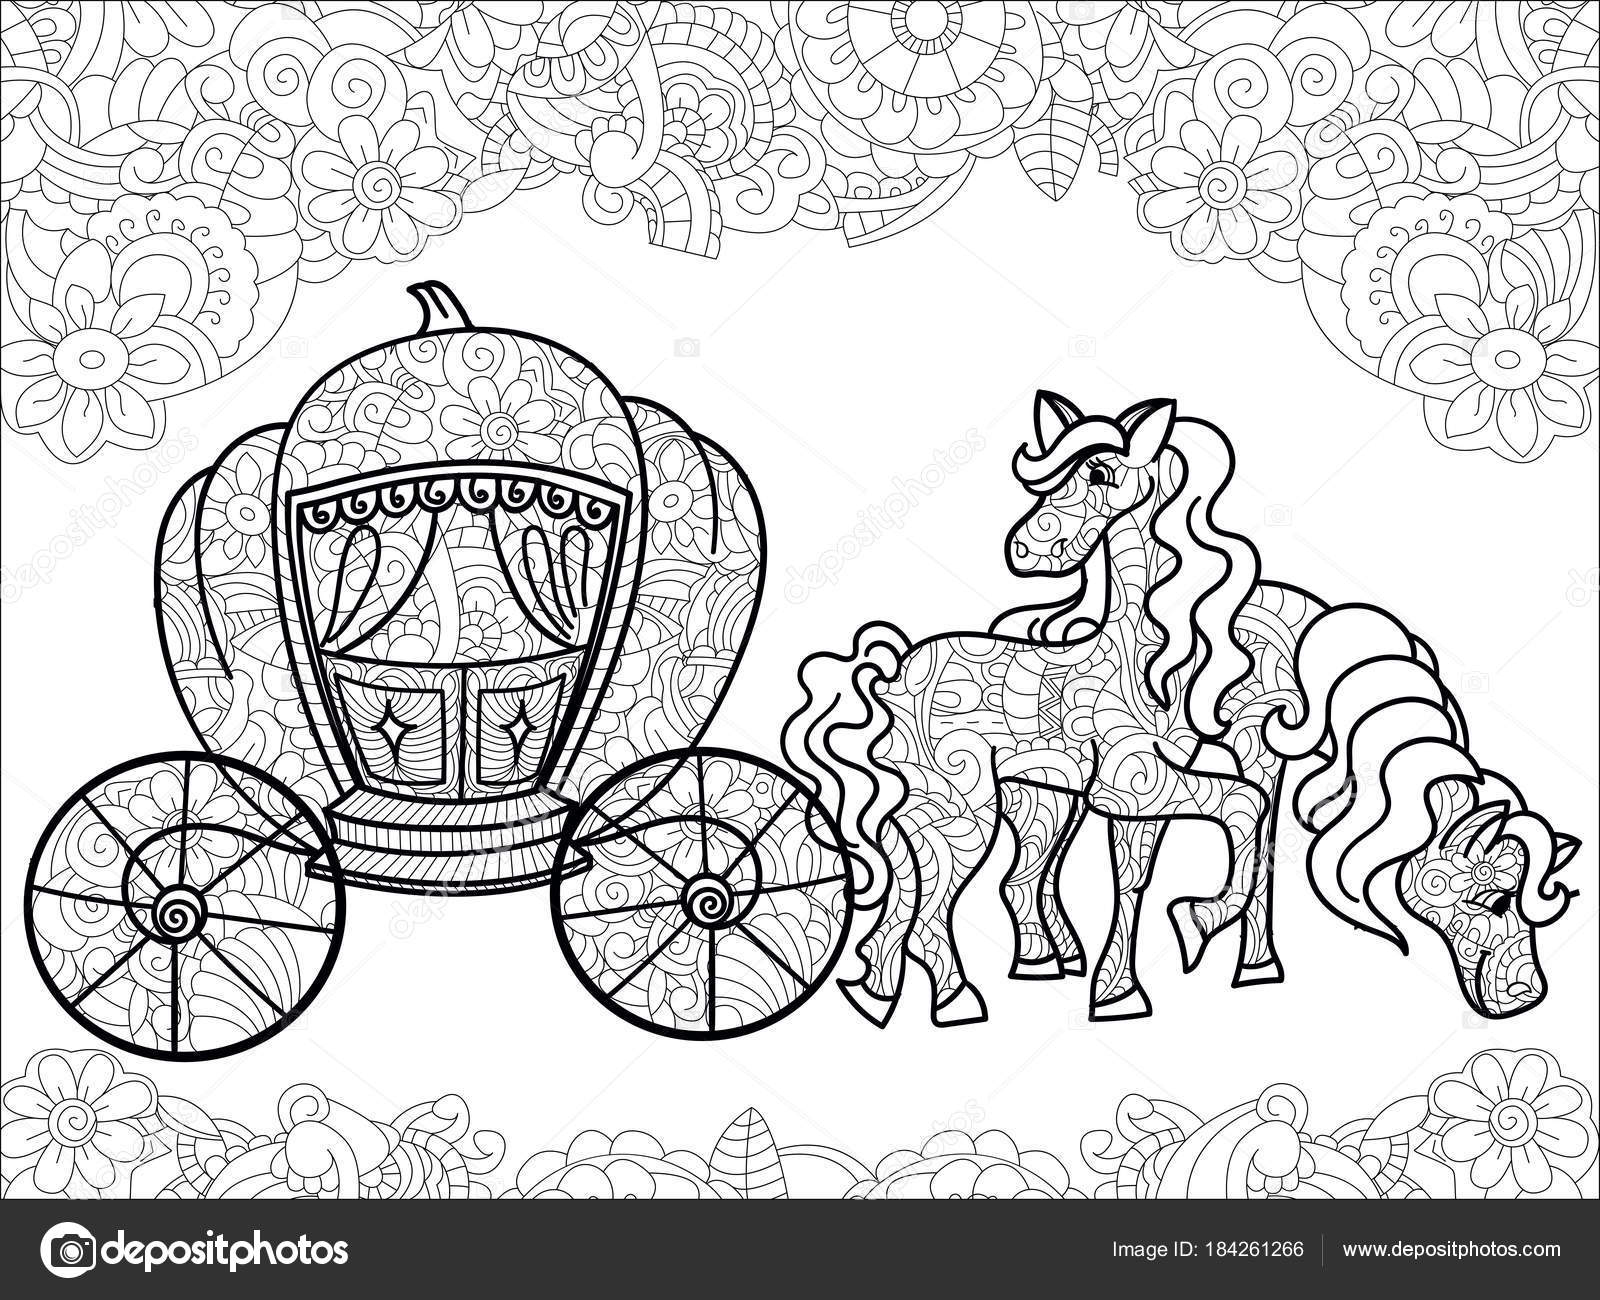 Horse Carriage Coloring Worksheet